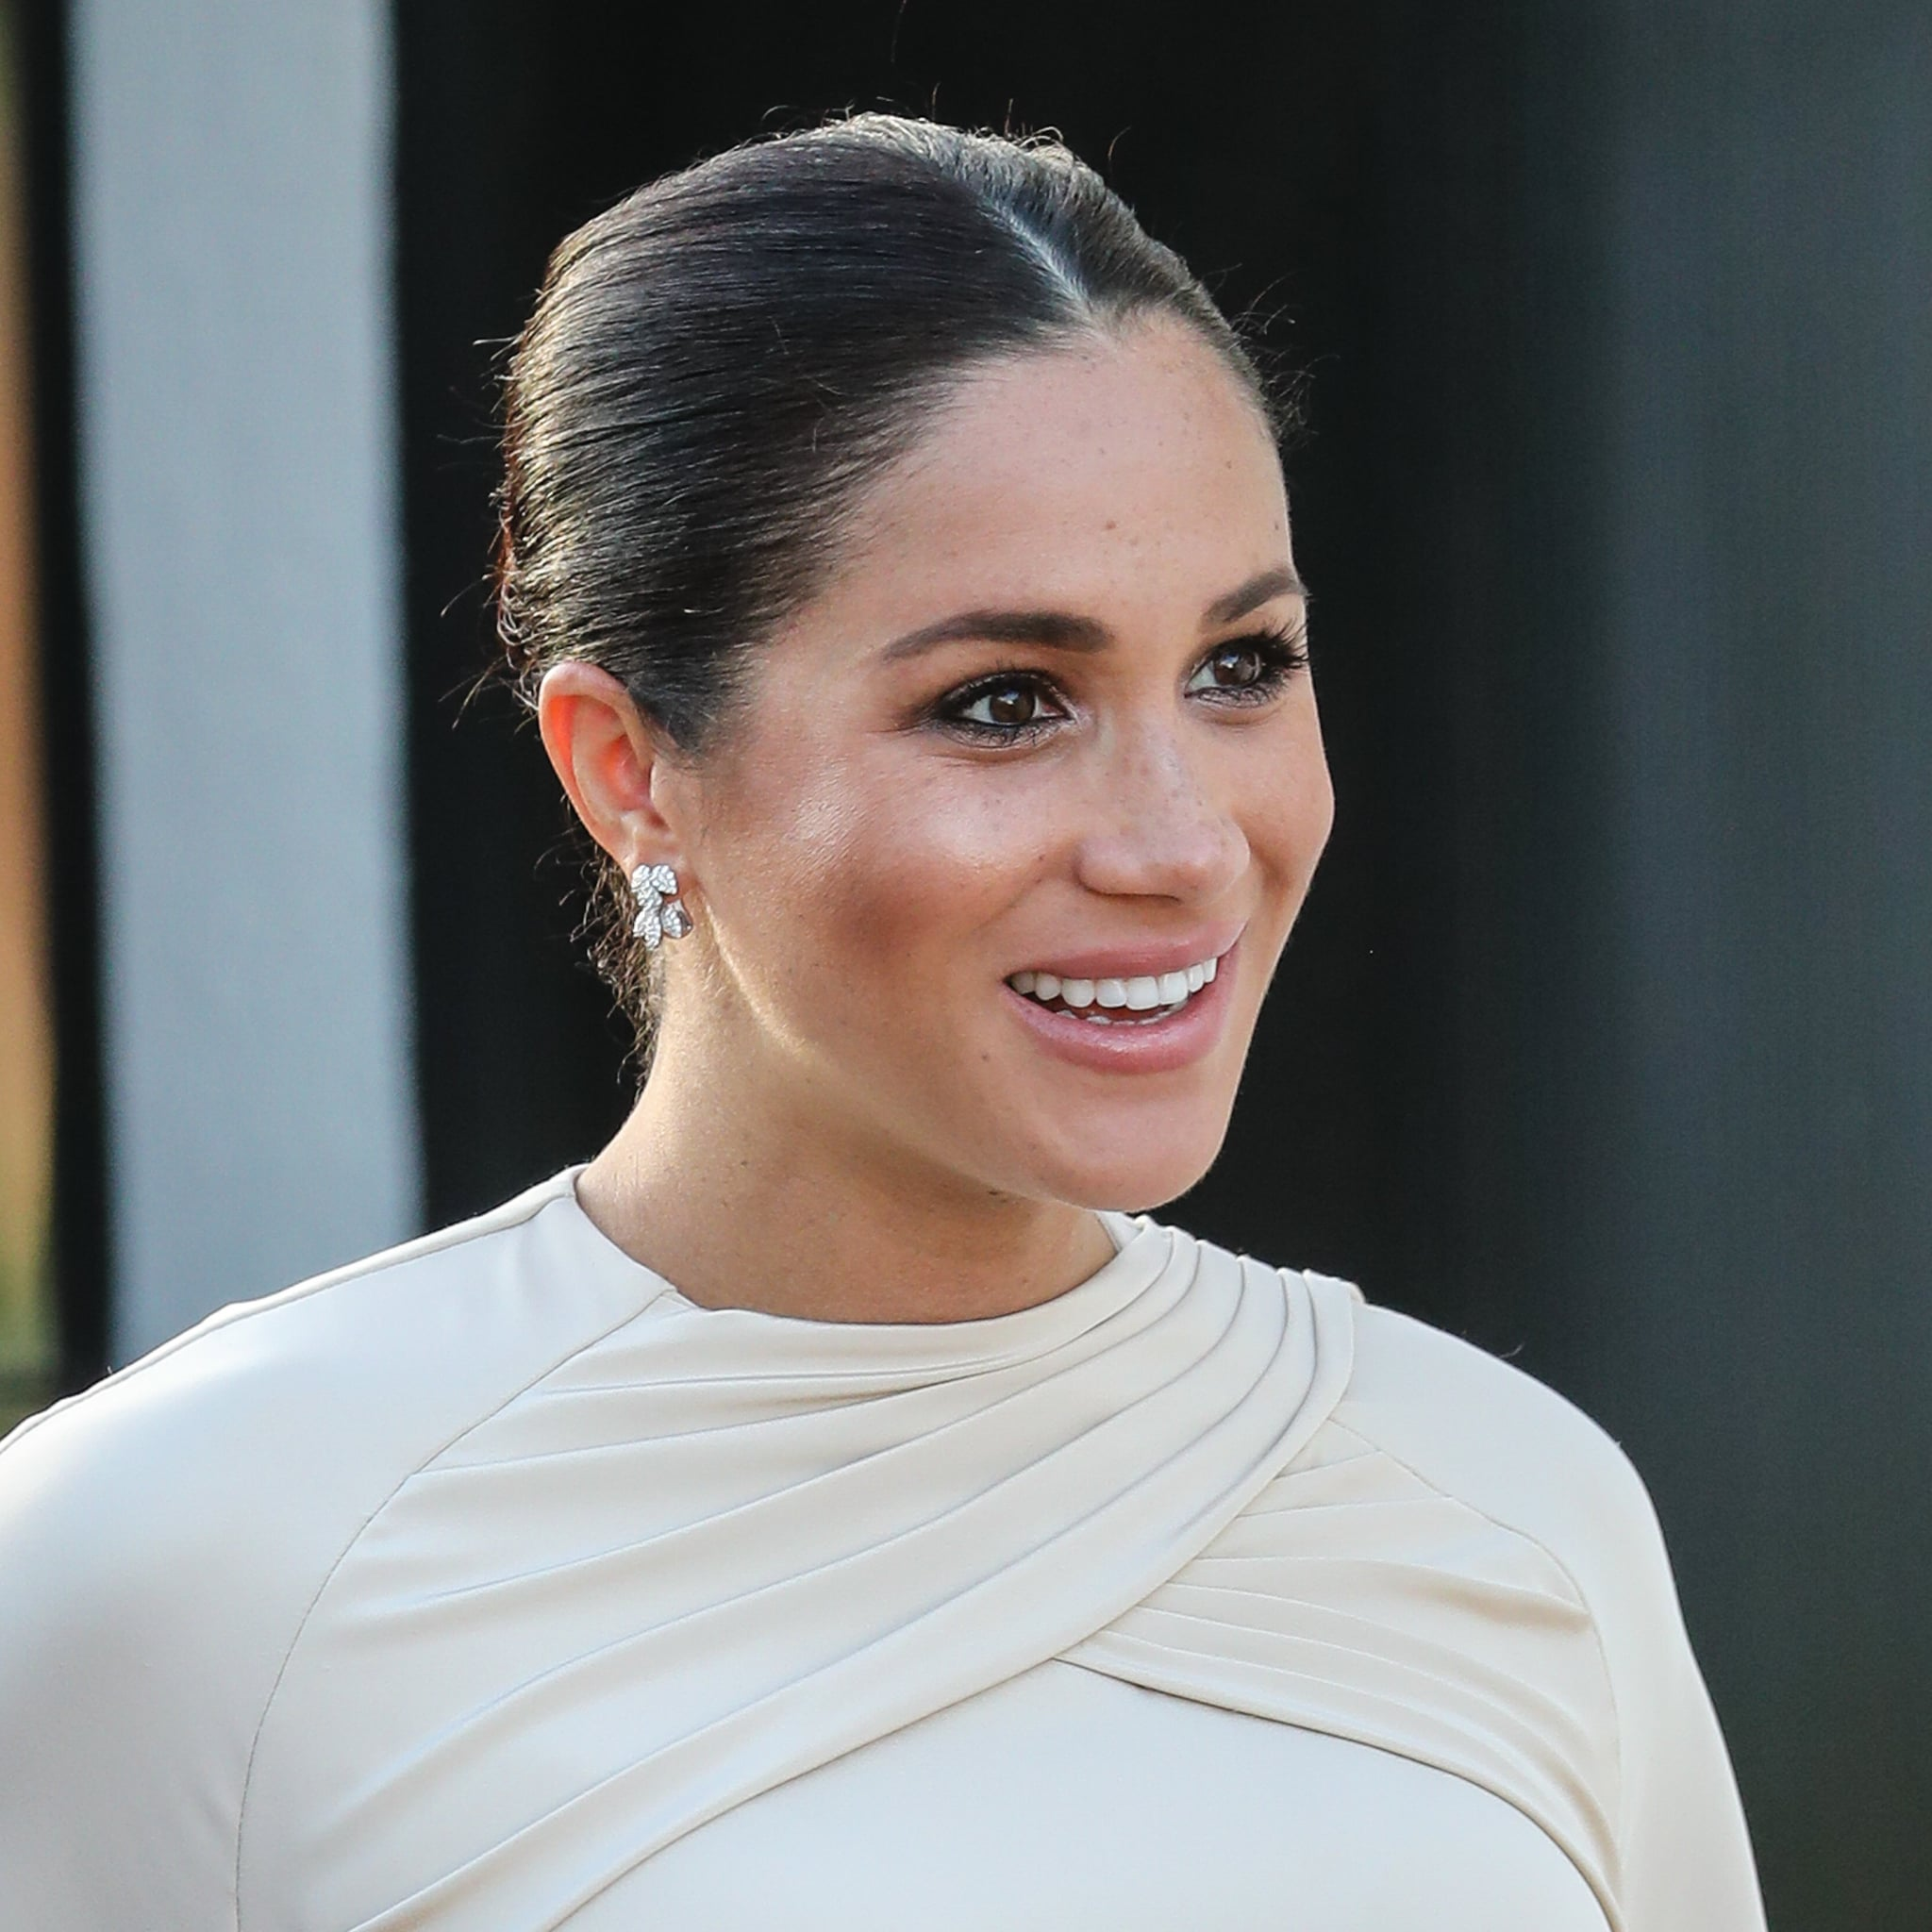 Meghan Markle S Best Hair And Makeup Tips And Secrets Popsugar Beauty